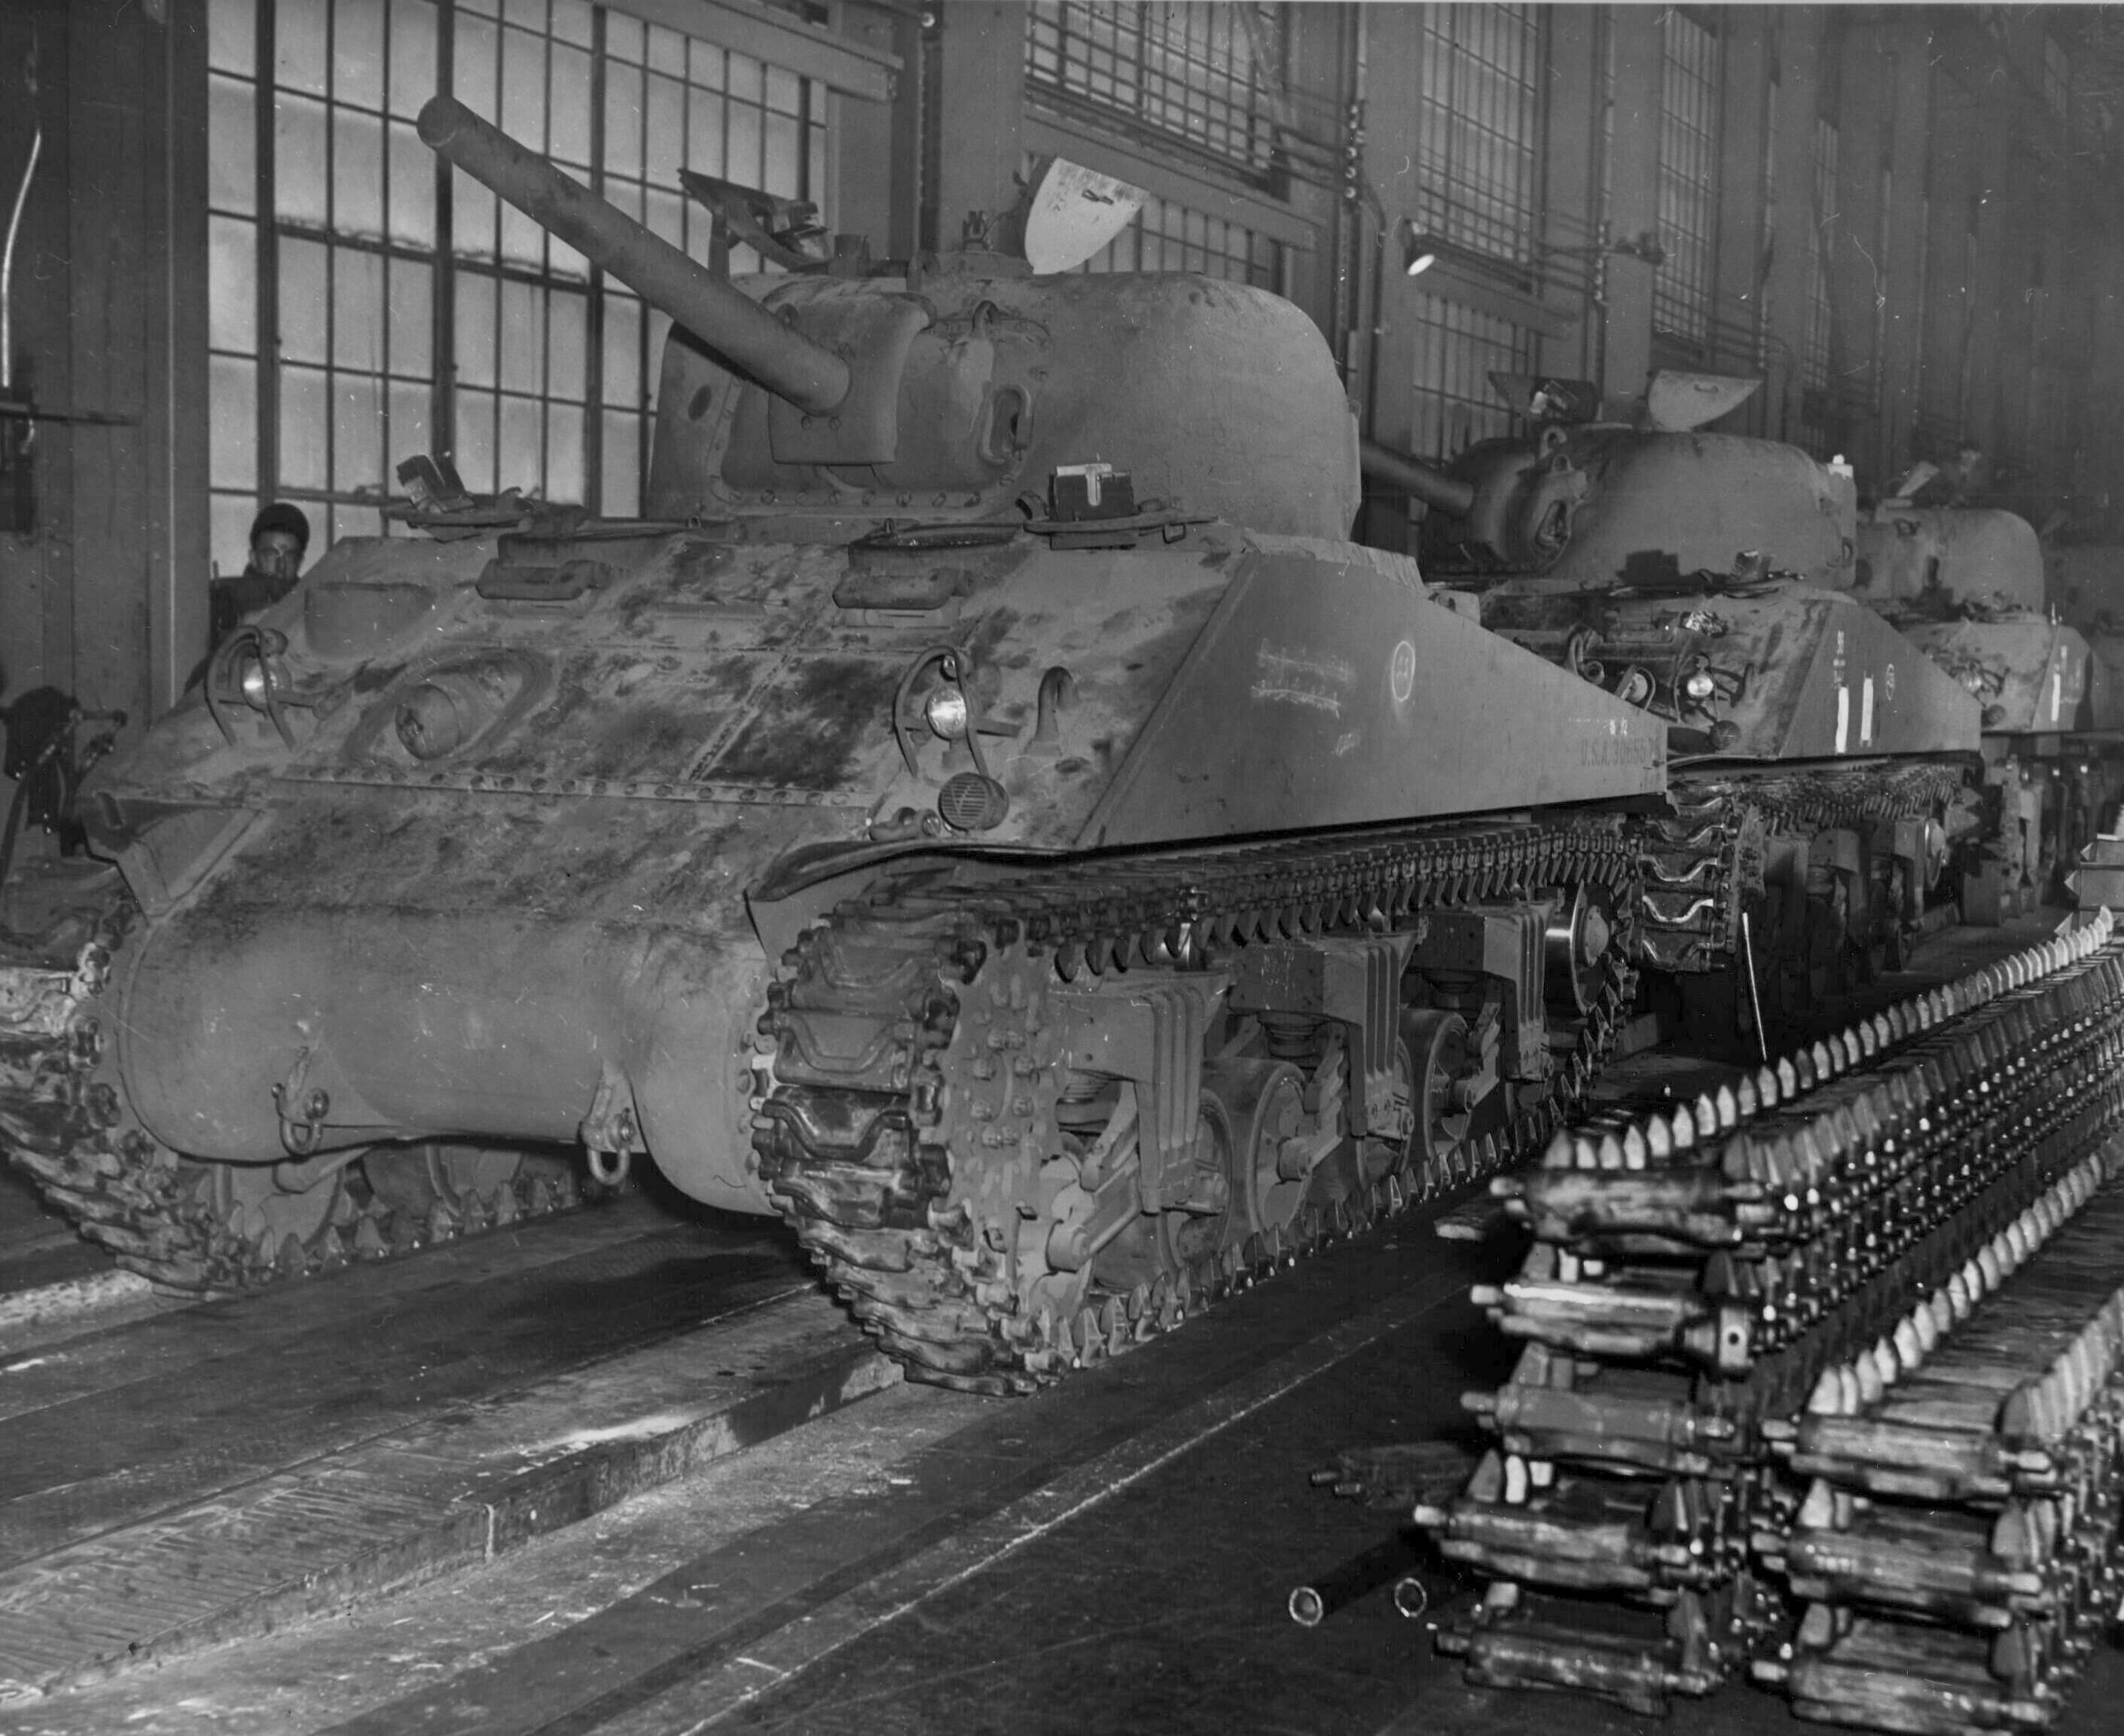 Sherman m4a2 being built at Alco